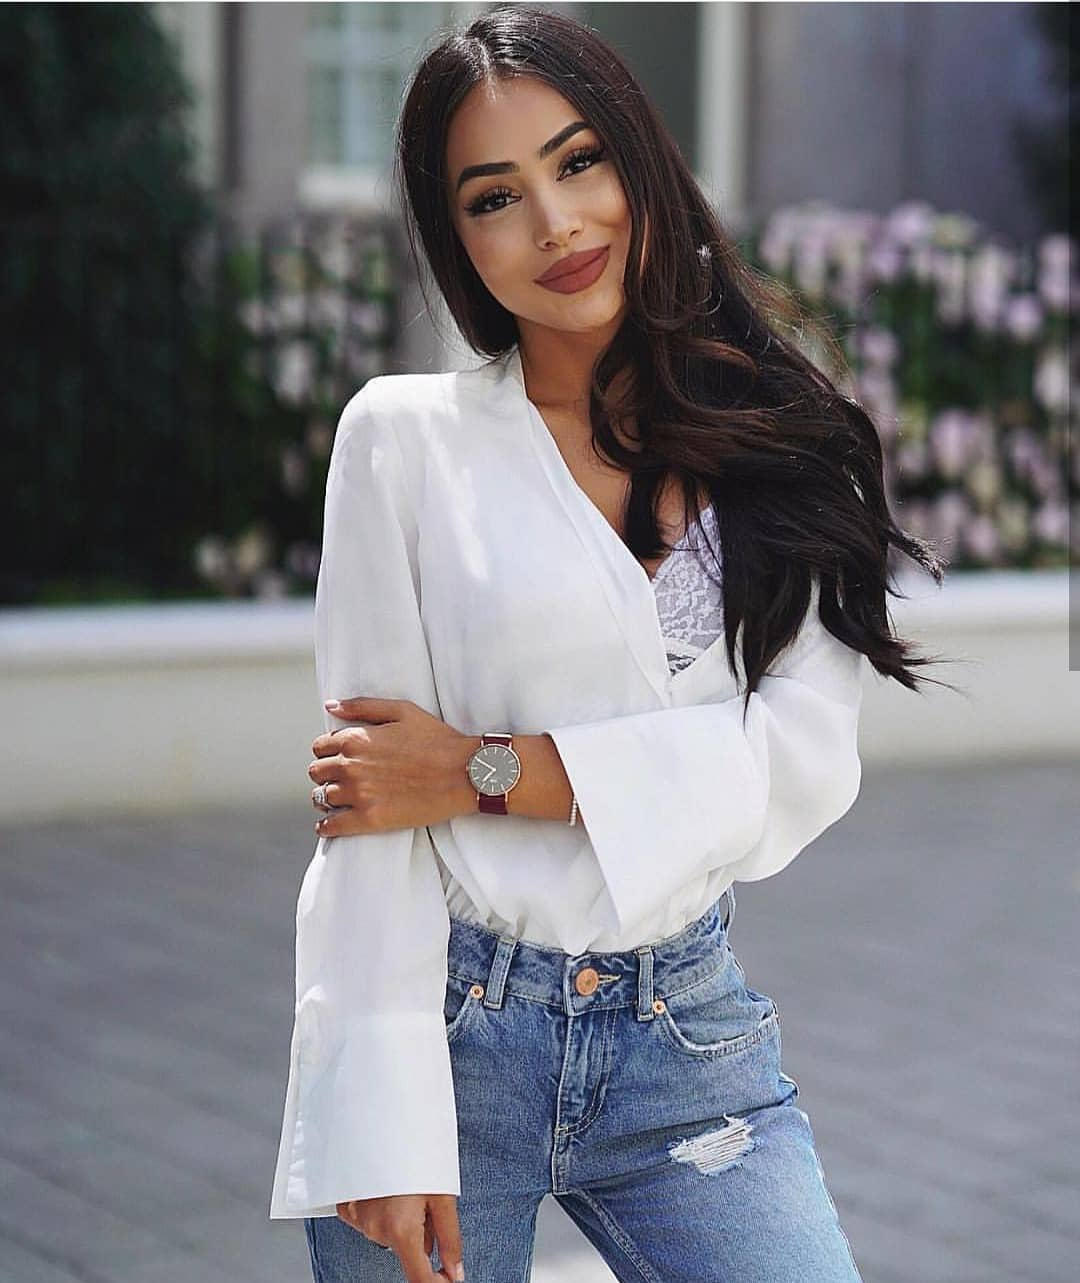 White Shirt With Bell Sleeves And Blue Jeans For Summer 2019